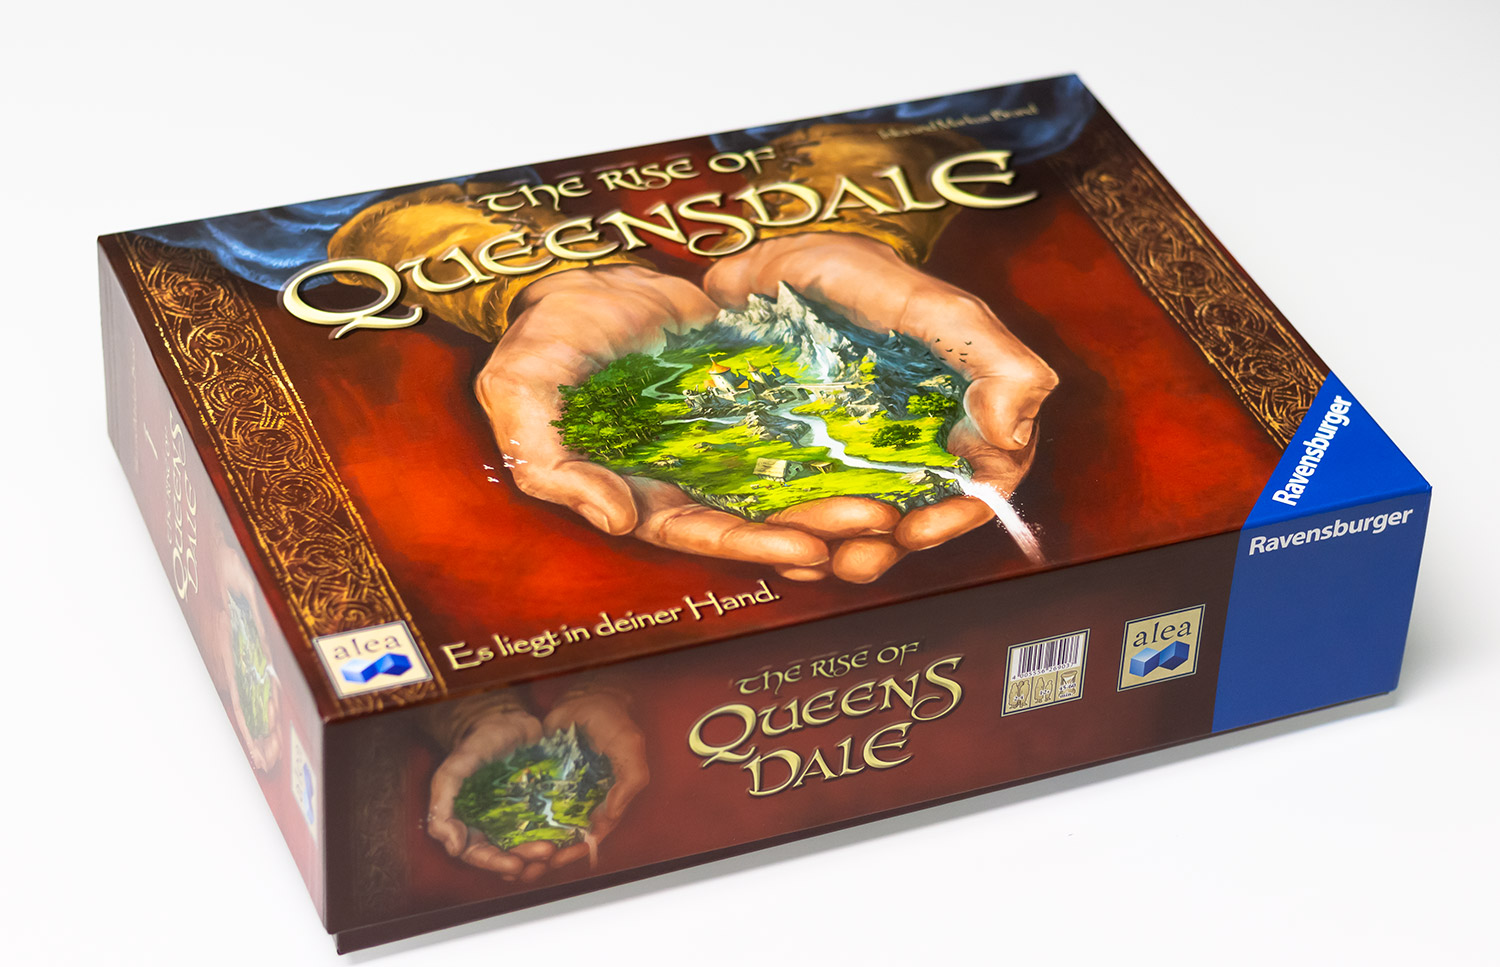 Angespielt: The Rise of Queensdale